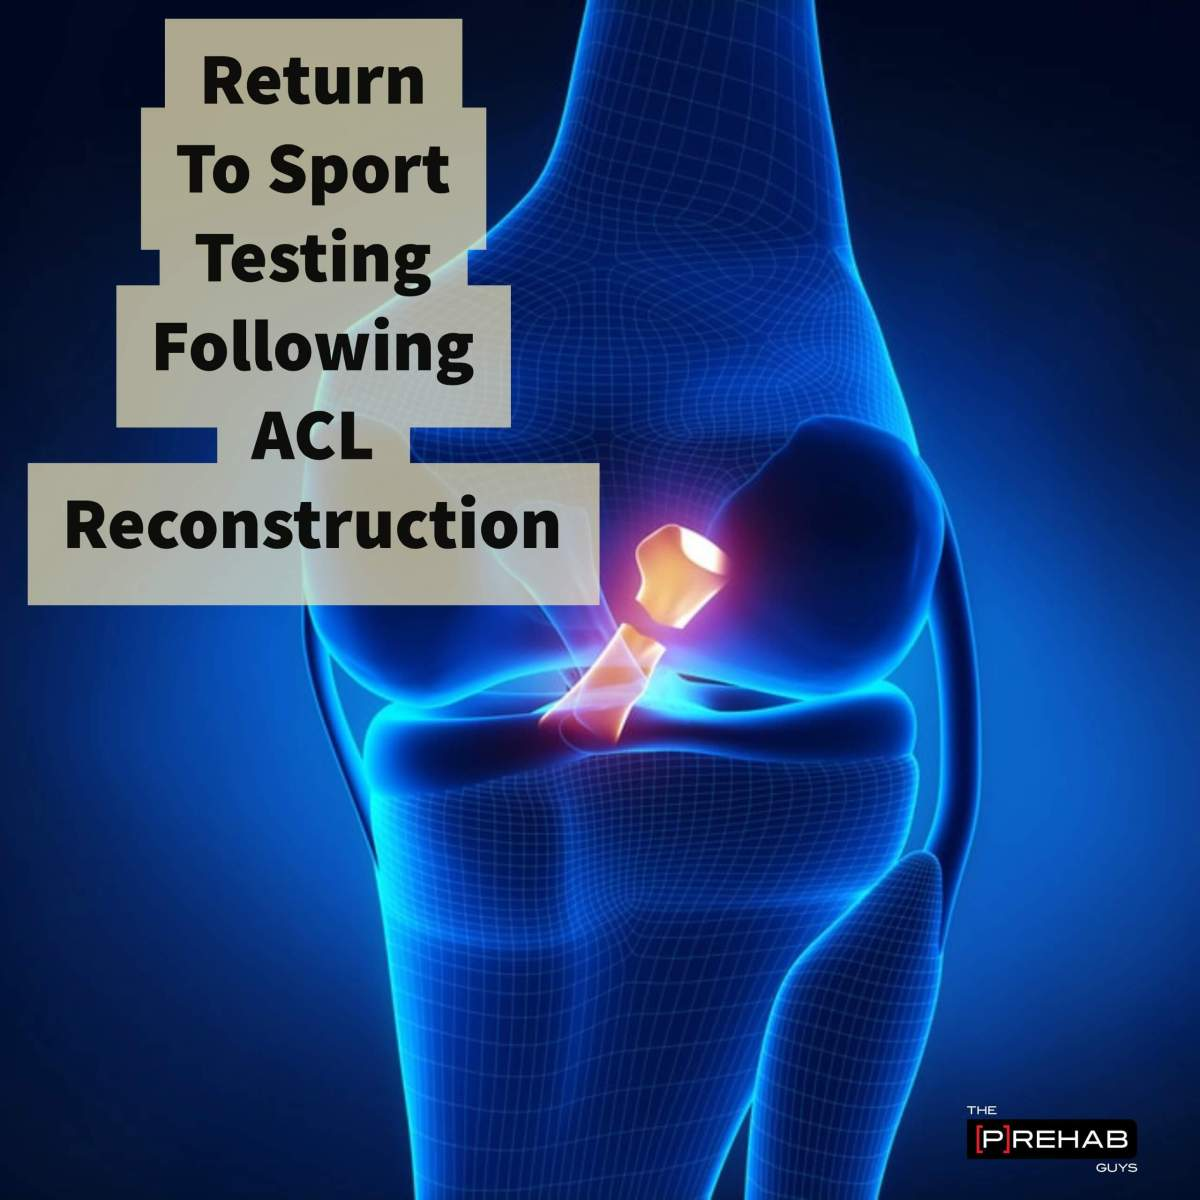 """How Do I Know When I Am Ready To Play Again?"" Return To Sport Testing For Athletes Following ACL Reconstruction Surgery"